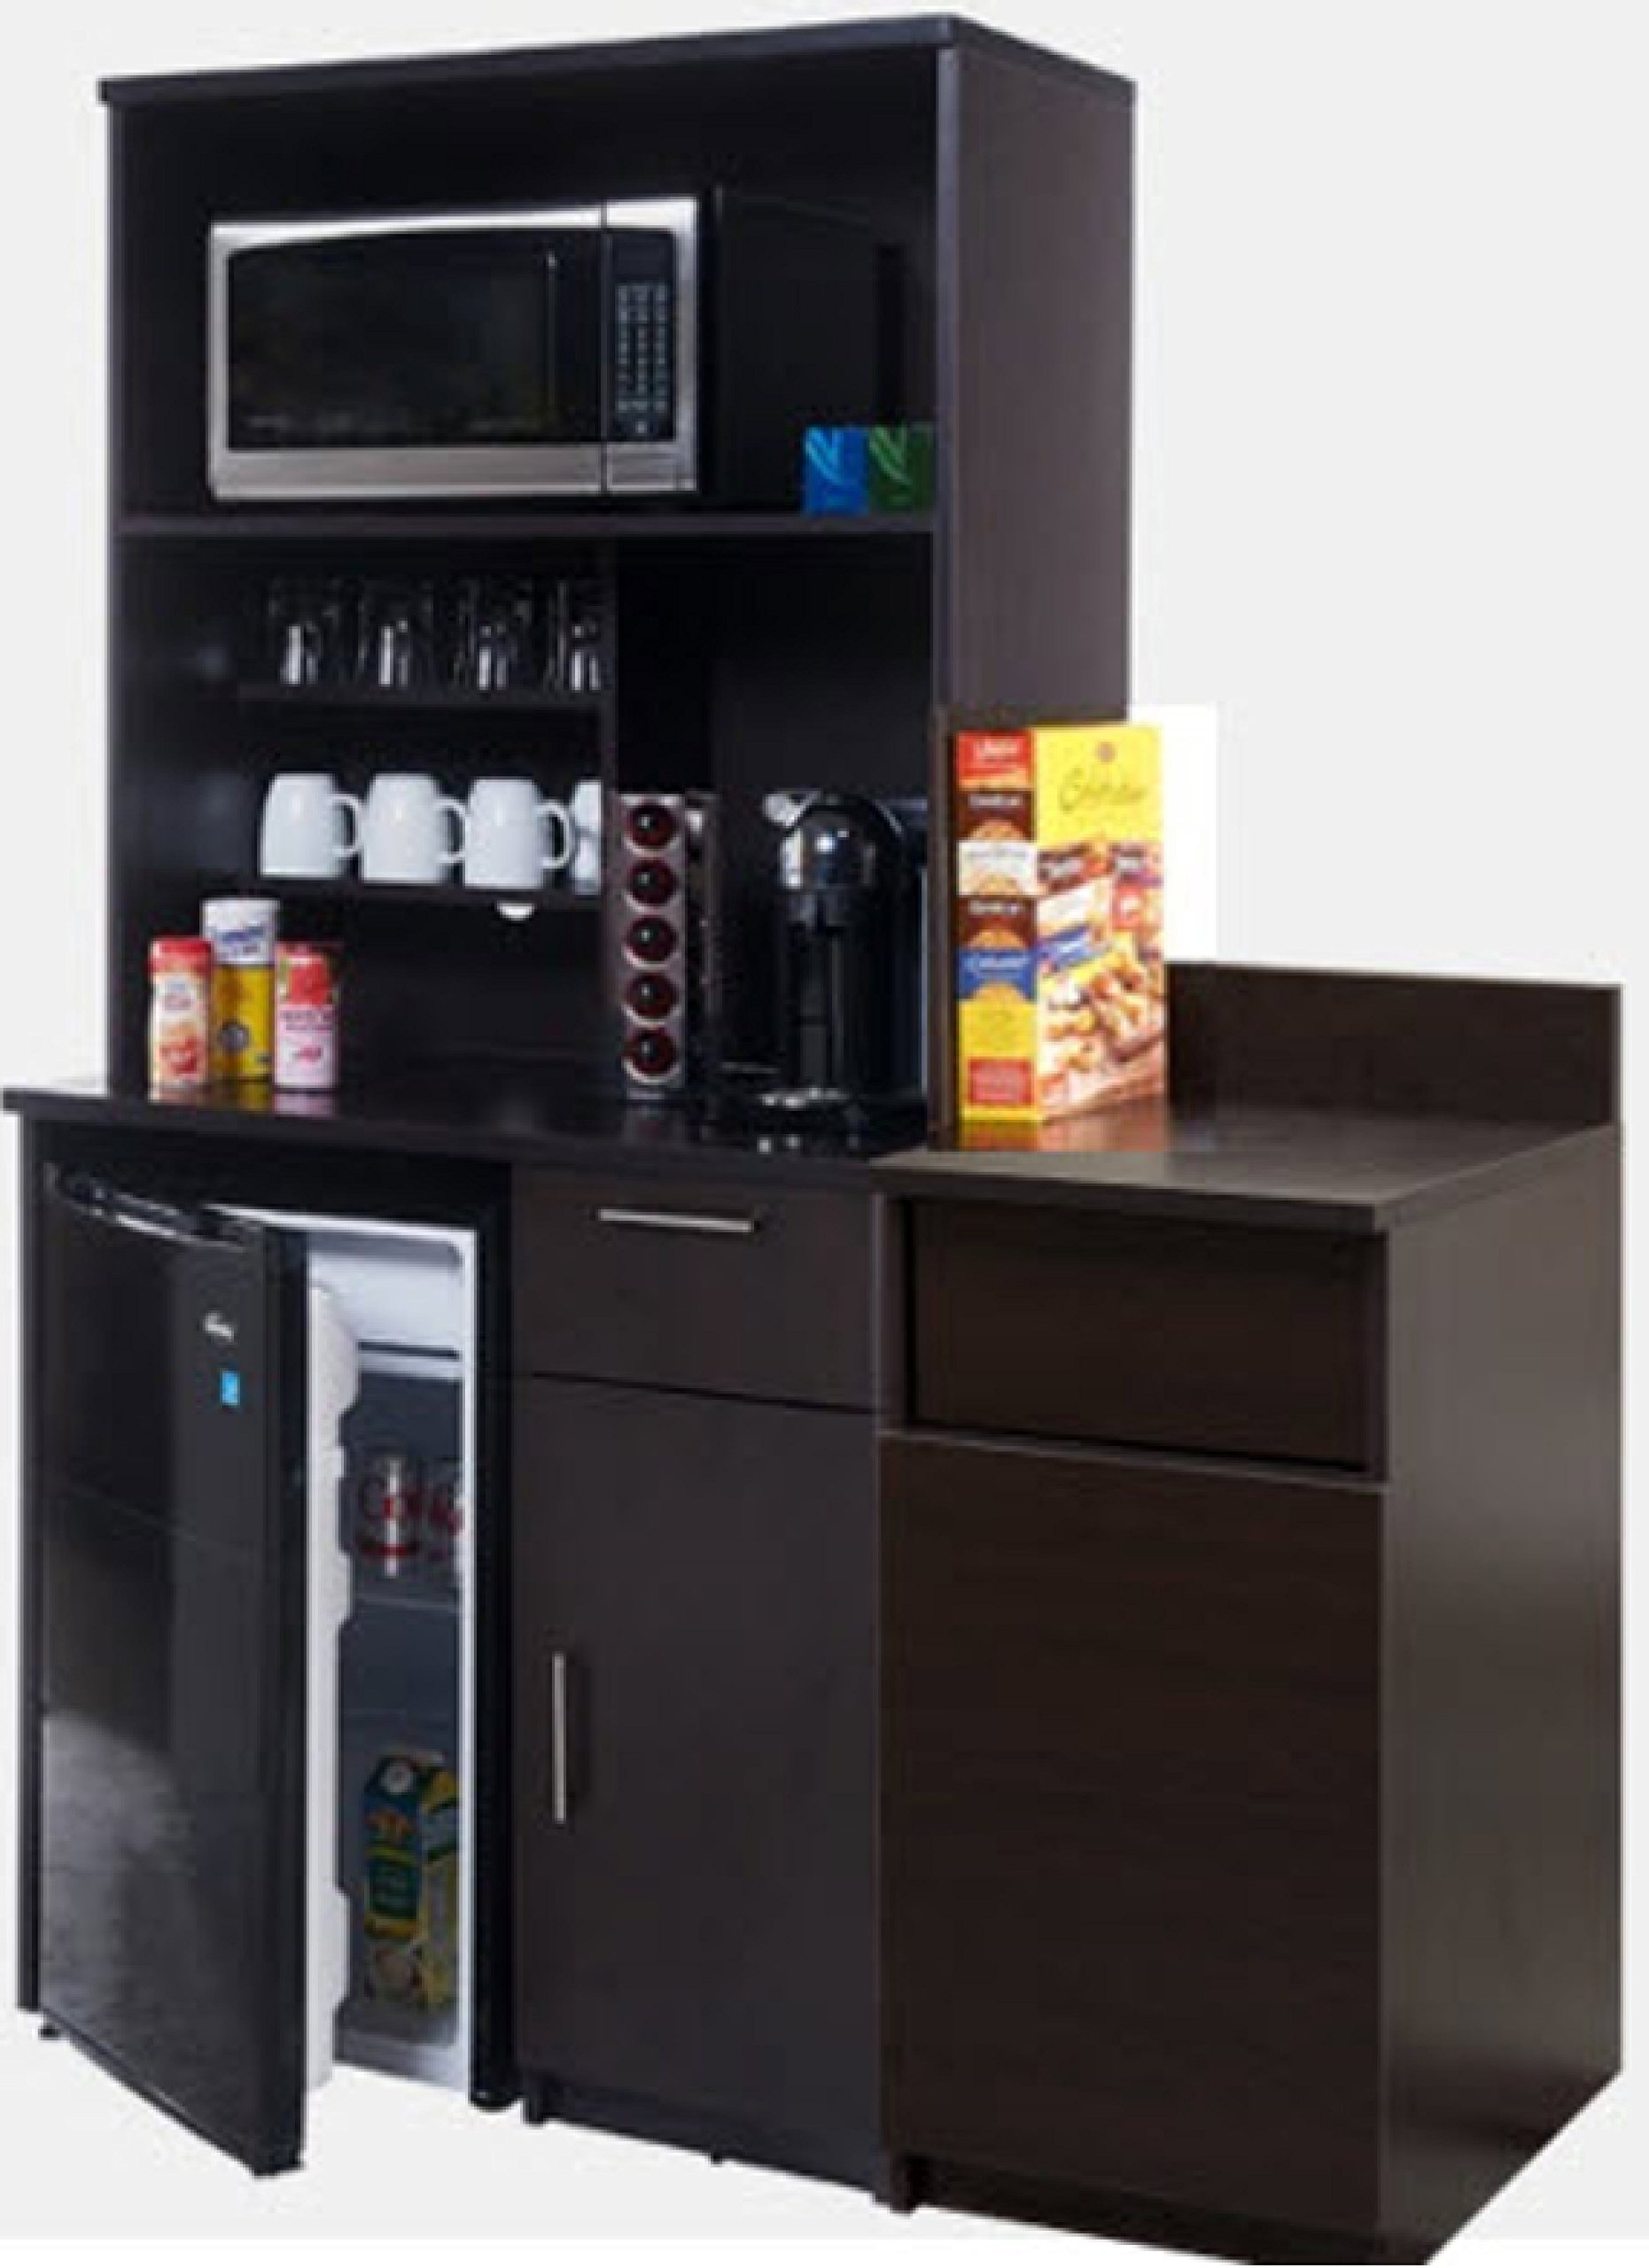 Coffee Kitchen Lunch Break Room Cabinets Model 4252 BREAKTIME 3 piece group Color Espresso - Factory Assembled (NOT RTA) Furniture Items ONLY. by Breaktime (Image #1)